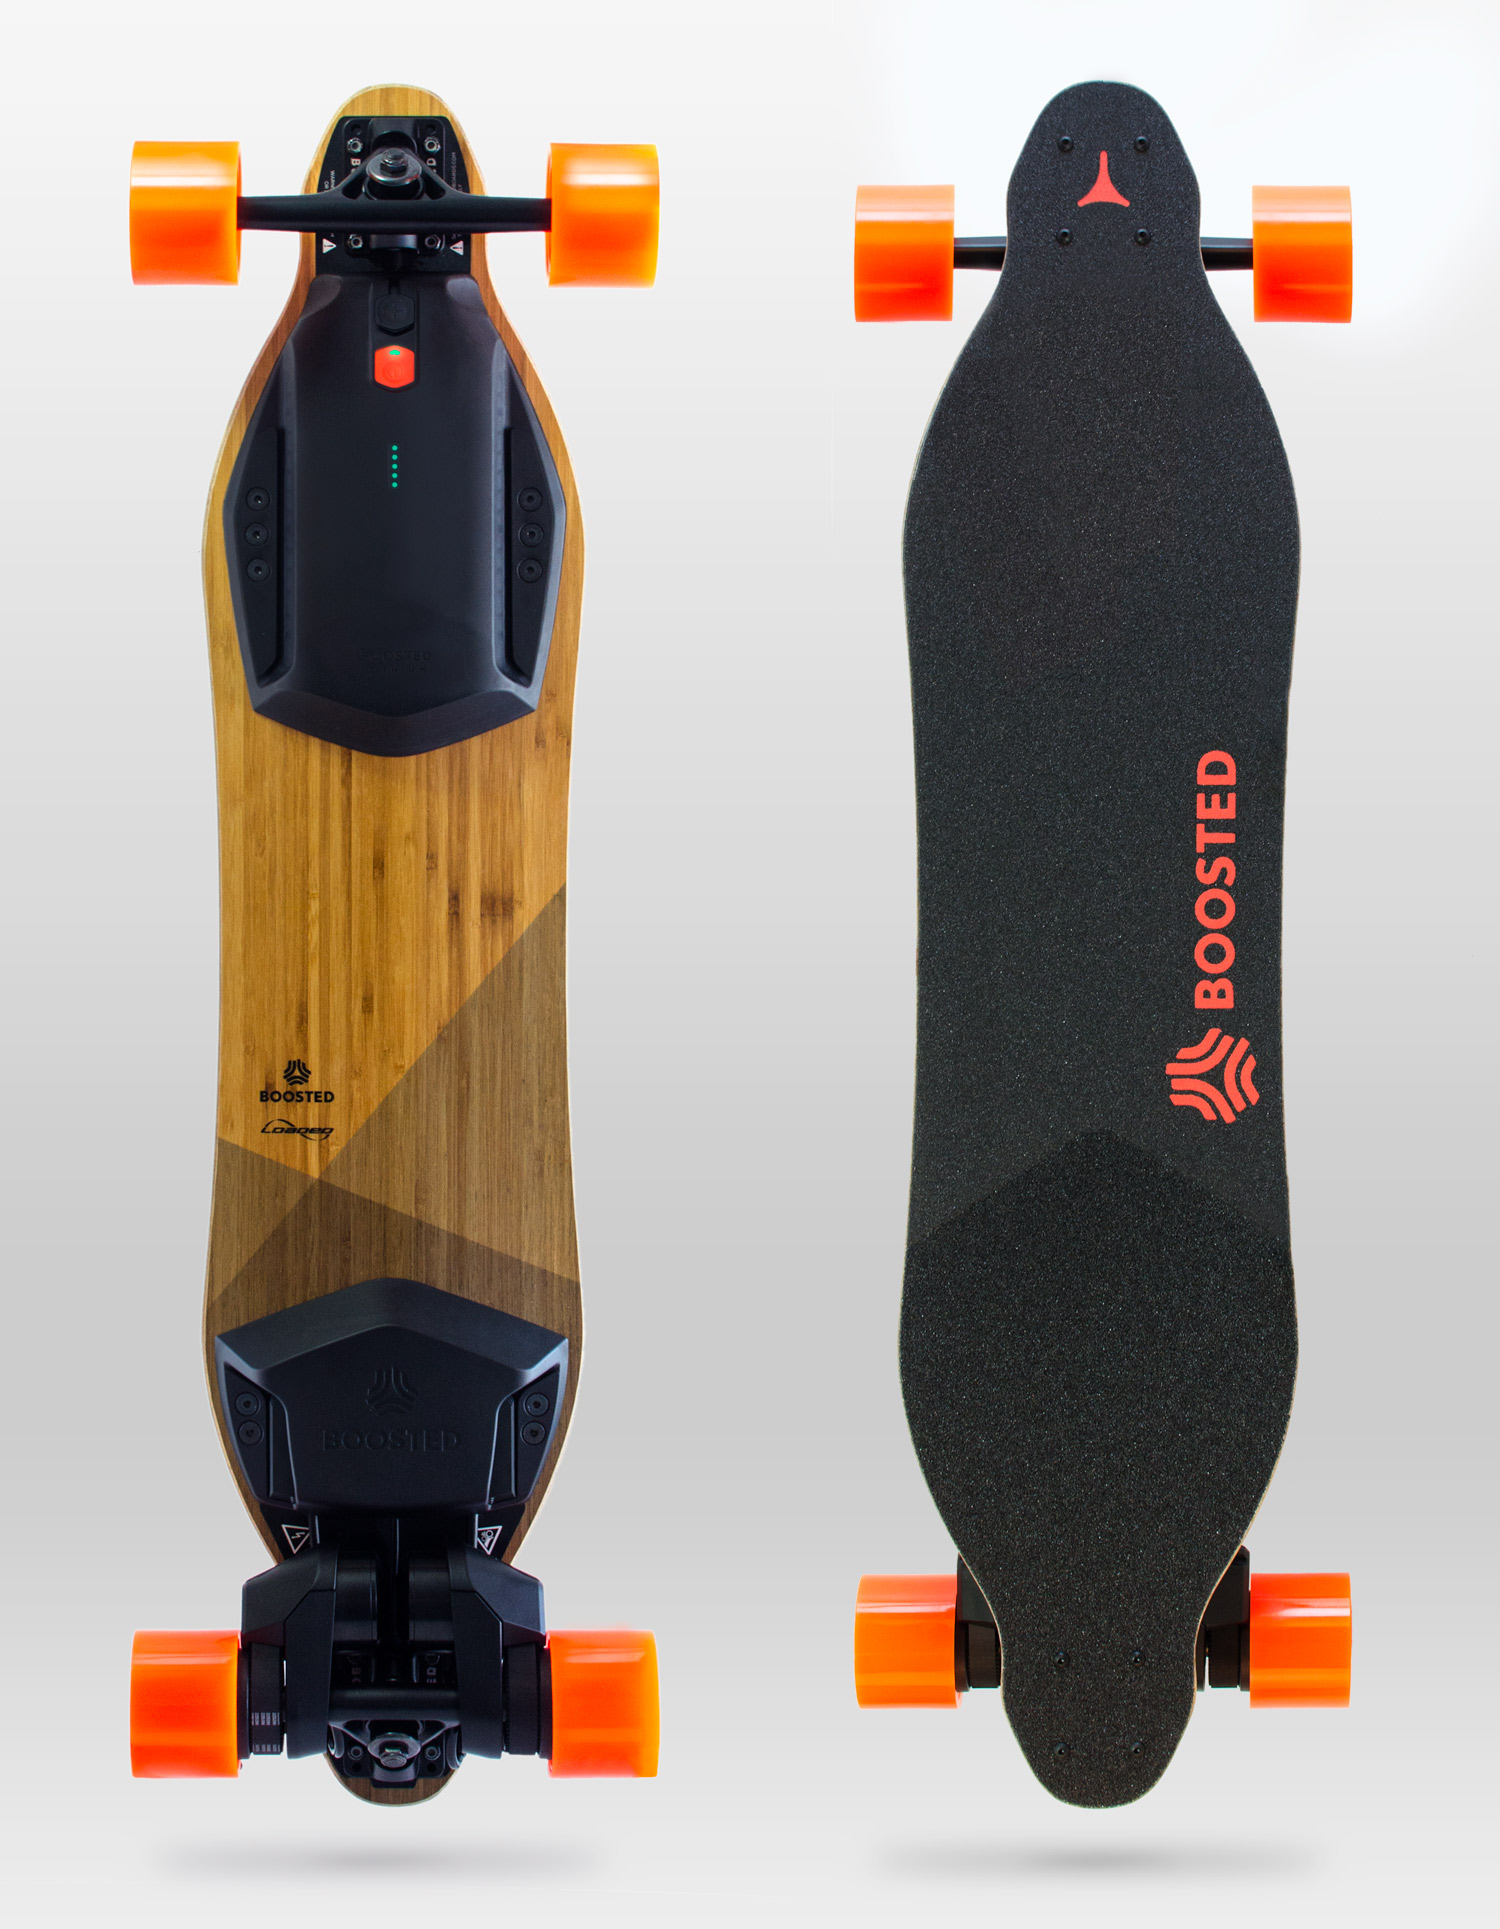 Cheap Electric Skateboard >> Boosted S New Electric Skateboards Are Water Resistant And Have